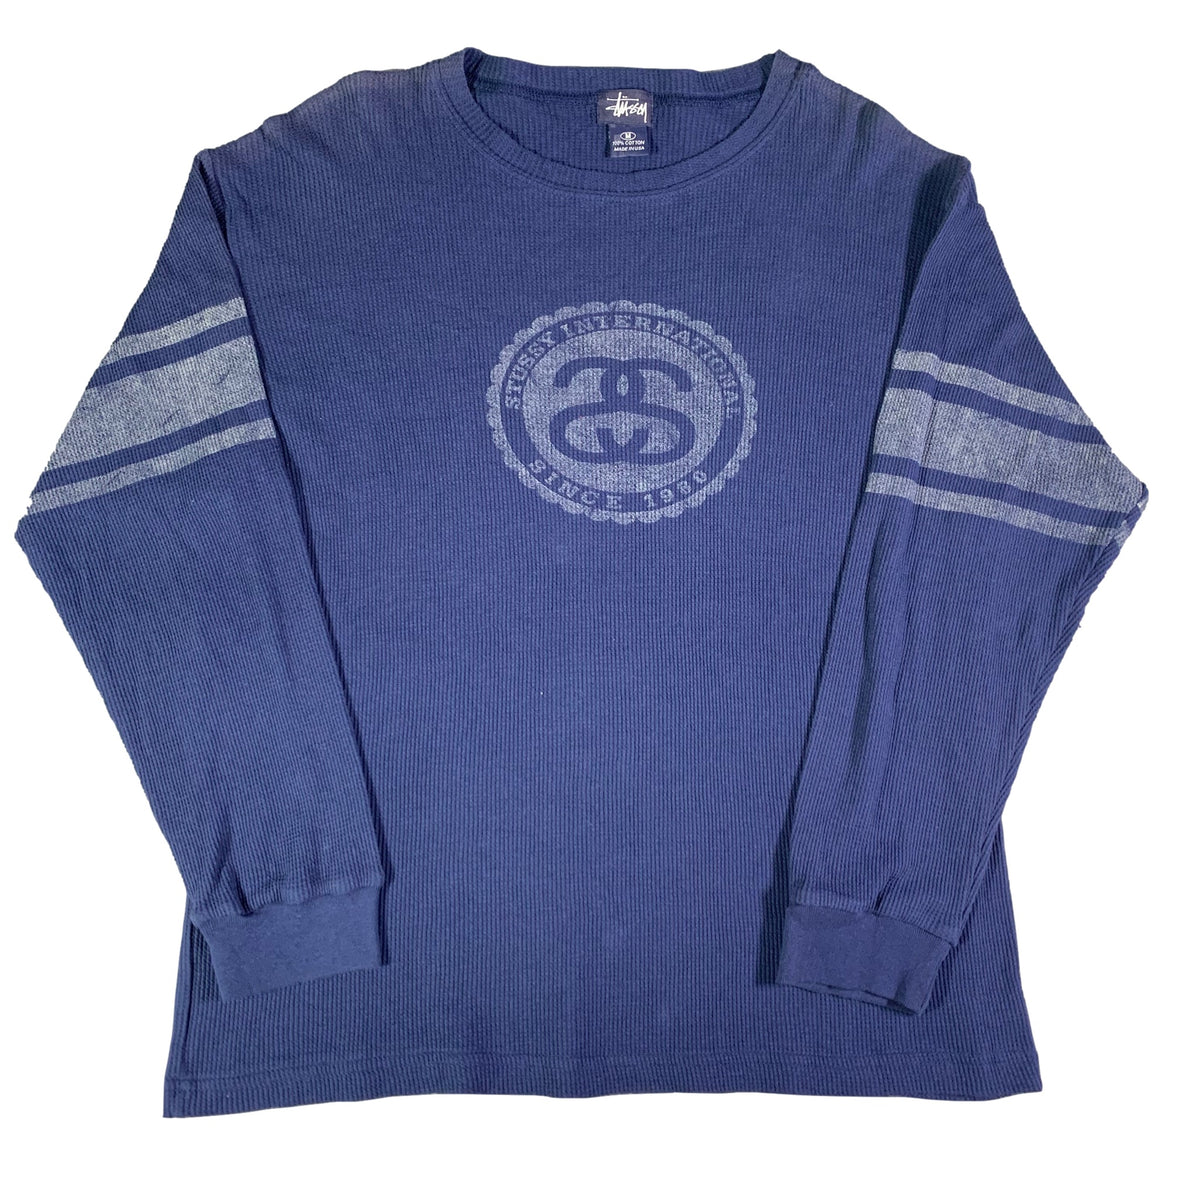 "Vintage Stussy ""Stussy International"" Long Sleeve Thermal"